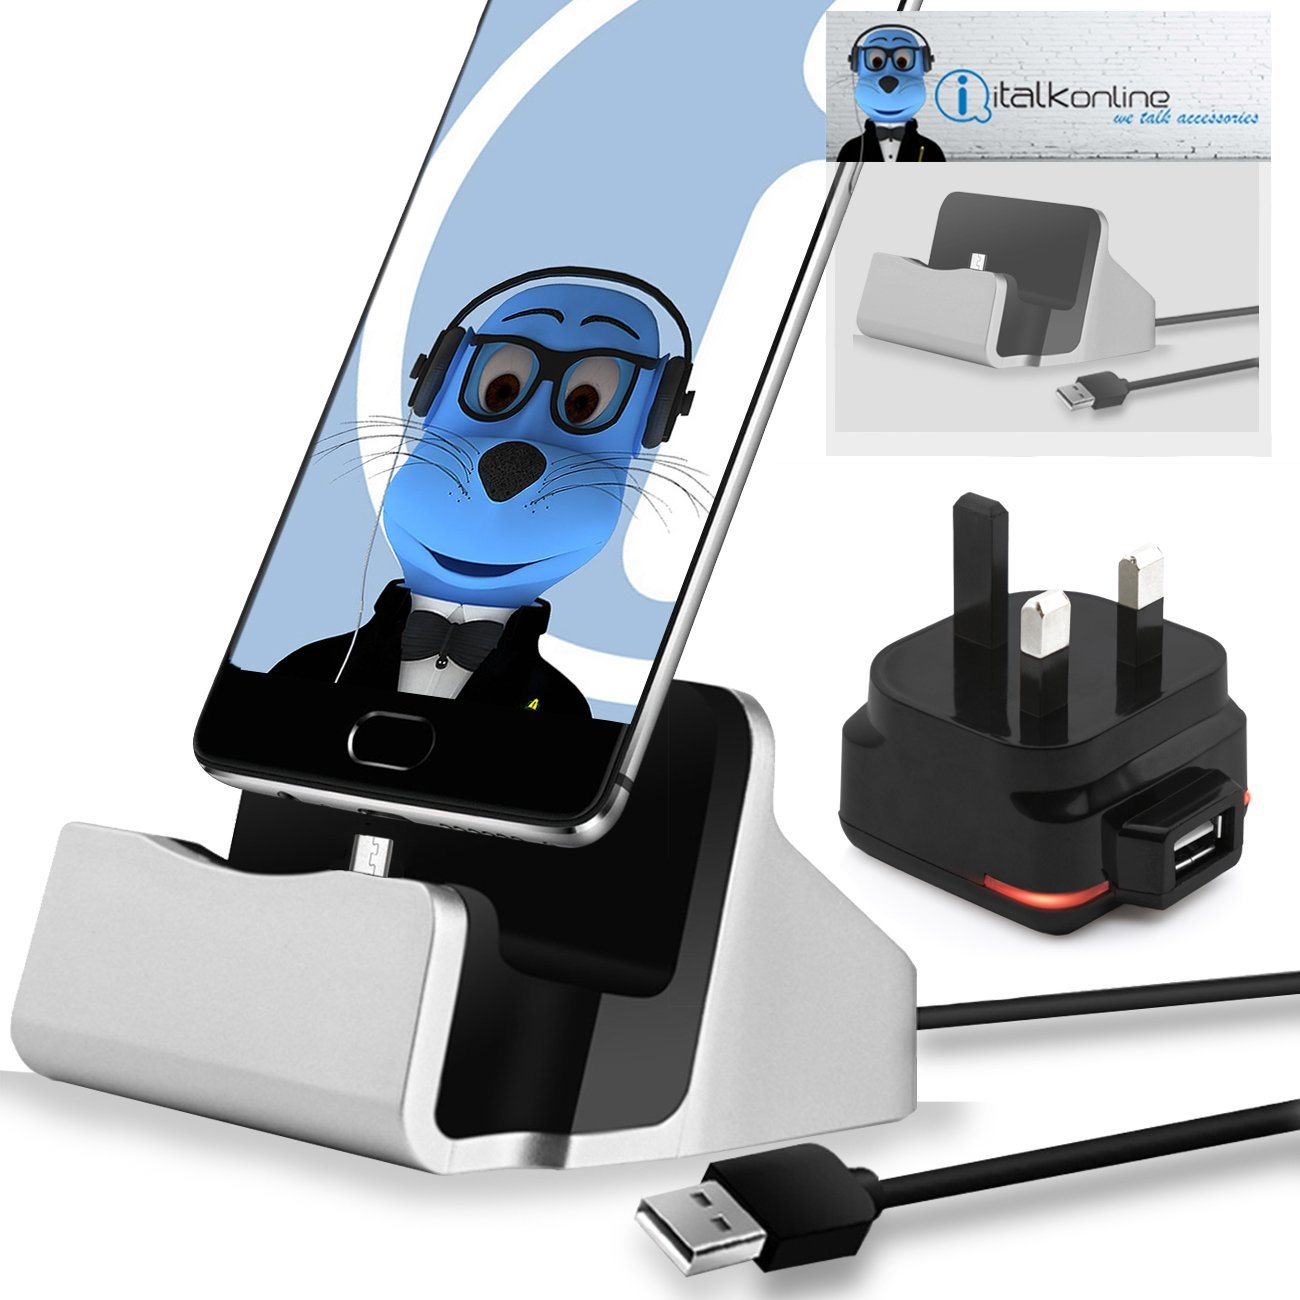 USB Power Port Ready retractable USB charge USB cable wired specifically for the Pantech Discover and uses TipExchange